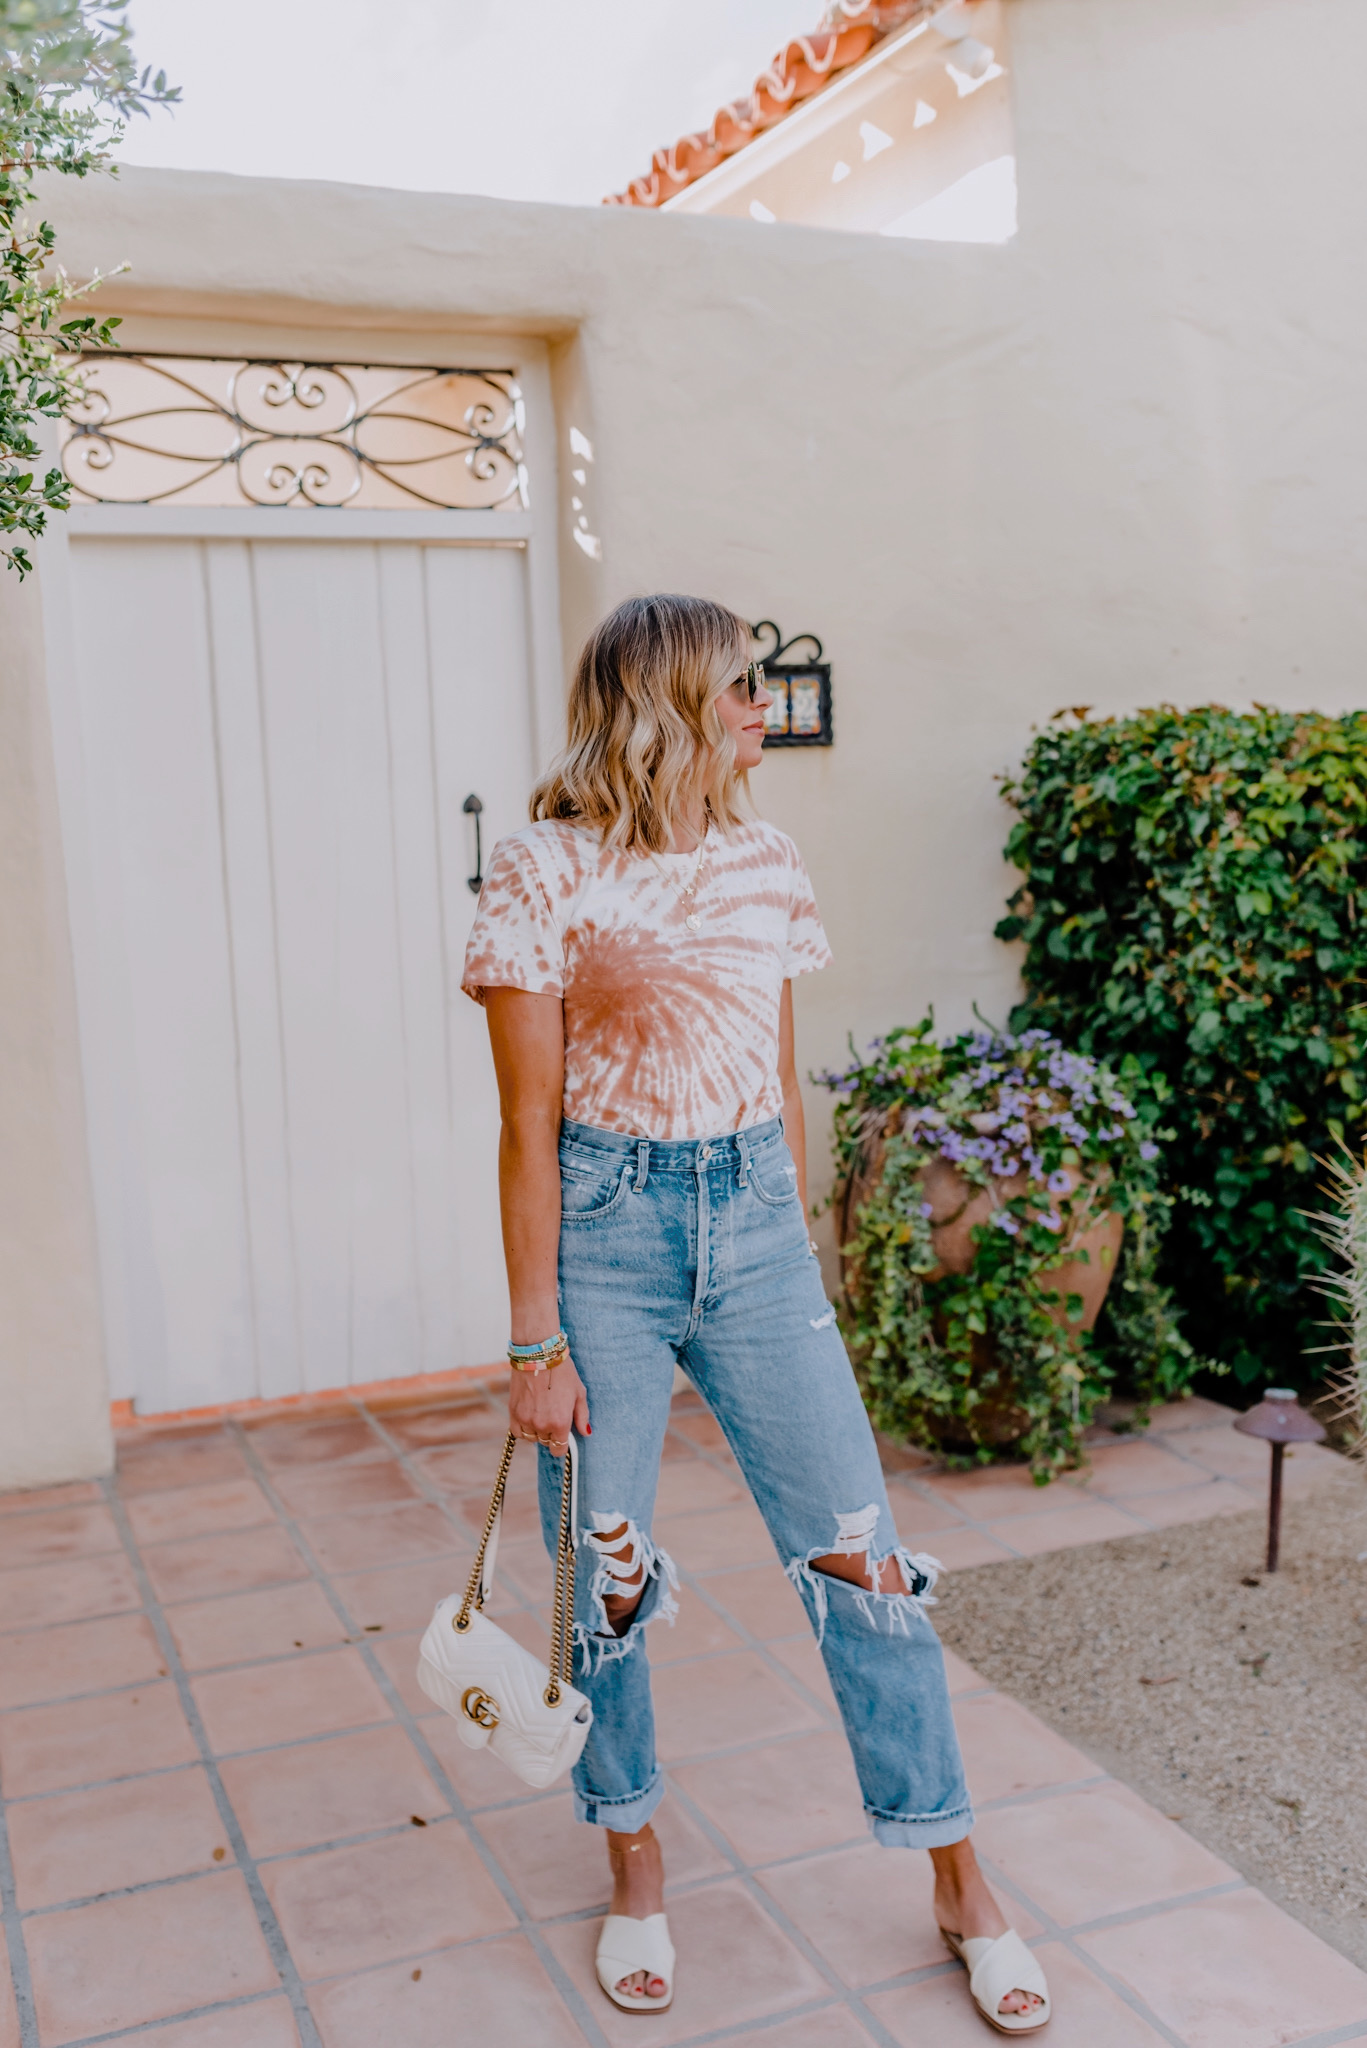 Tie Dye Fashion by popular San Diego fashion blog, Navy Grace: image of a woman wearing a Evereve The Tie-Dye Box-Cut Tee, AGolde jeans, Evereve The Day Crossover Sandal, and holding a Nordstrom GUCCI Small Matelassé Leather Shoulder Bag.